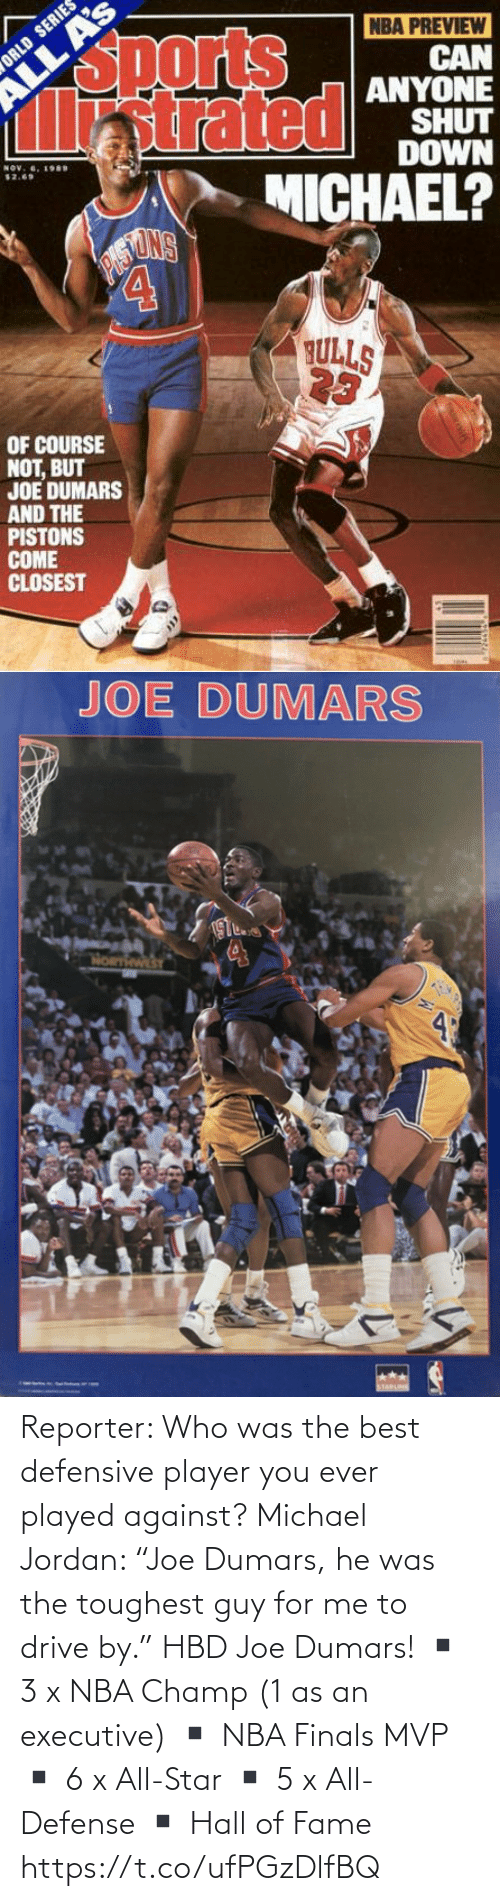 """fame: Reporter: Who was the best defensive player you ever played against?  Michael Jordan: """"Joe Dumars, he was the toughest guy for me to drive by.""""  HBD Joe Dumars!  ▪️ 3 x NBA Champ (1 as an executive) ▪️ NBA Finals MVP ▪️ 6 x All-Star ▪️ 5 x All-Defense ▪️ Hall of Fame https://t.co/ufPGzDlfBQ"""